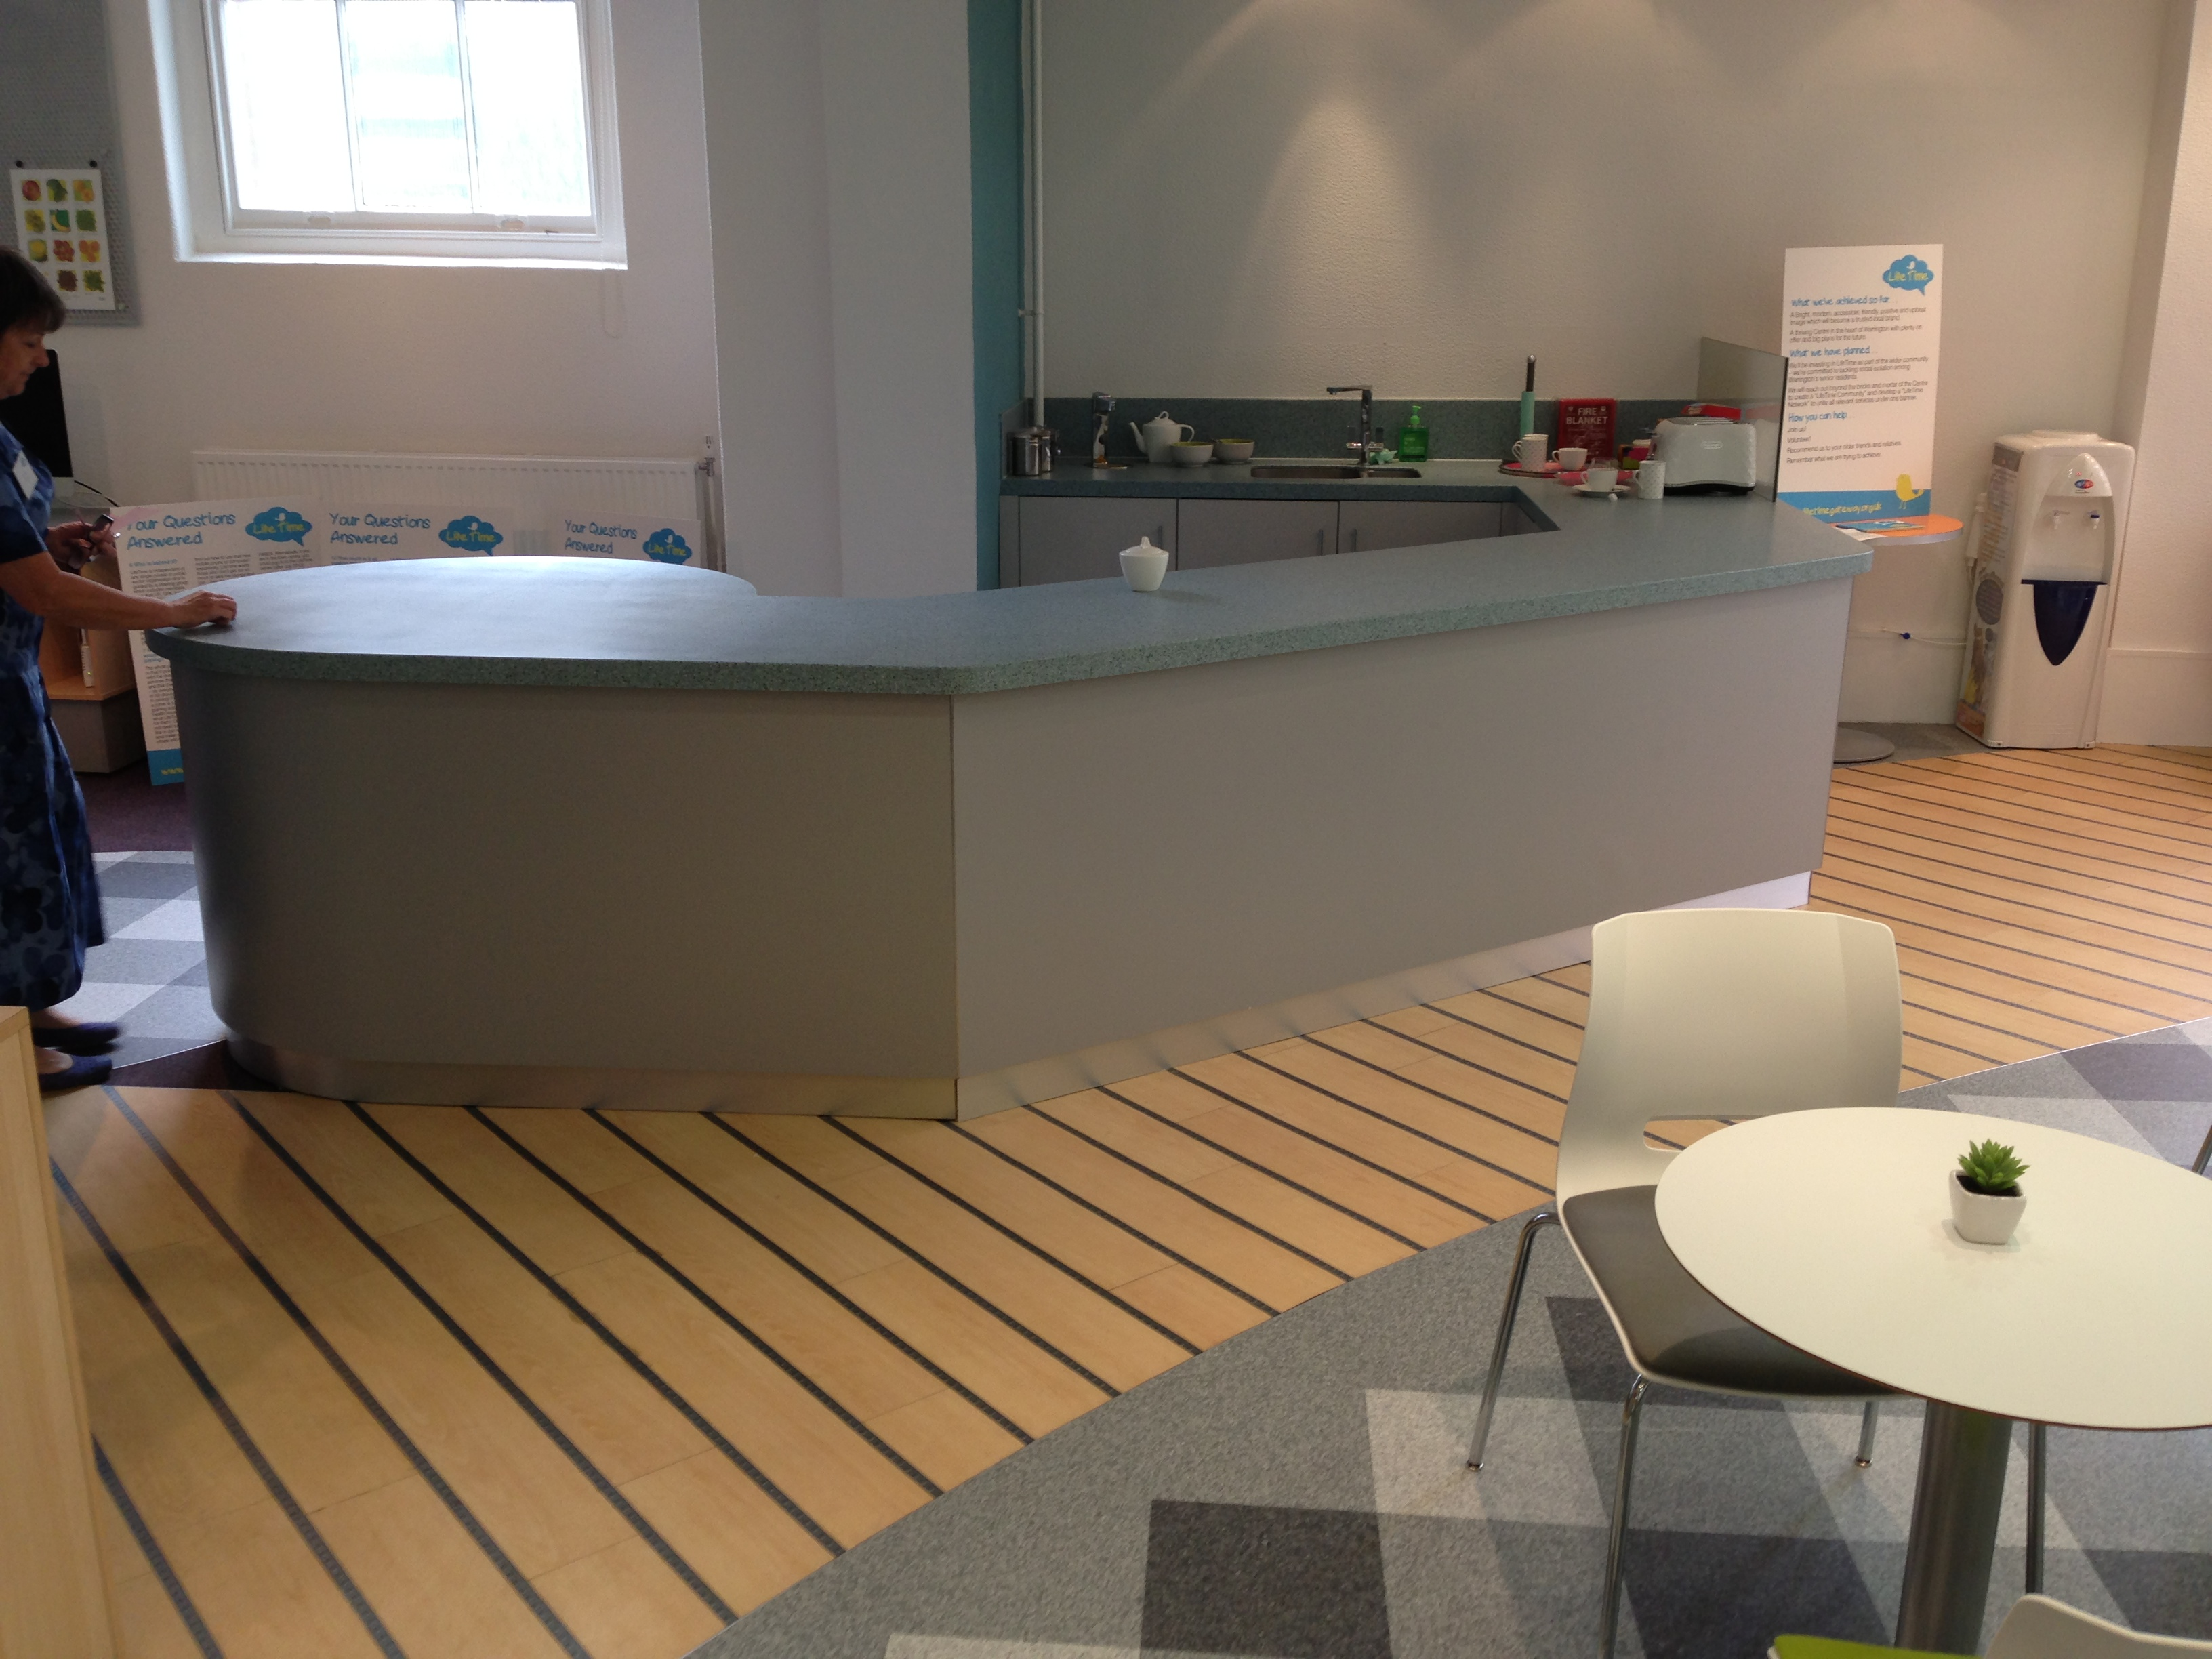 Coffee bar reception – Warrington Fascia made up in Mr Mdf with steel formica laminate, plinth made from stainless steel